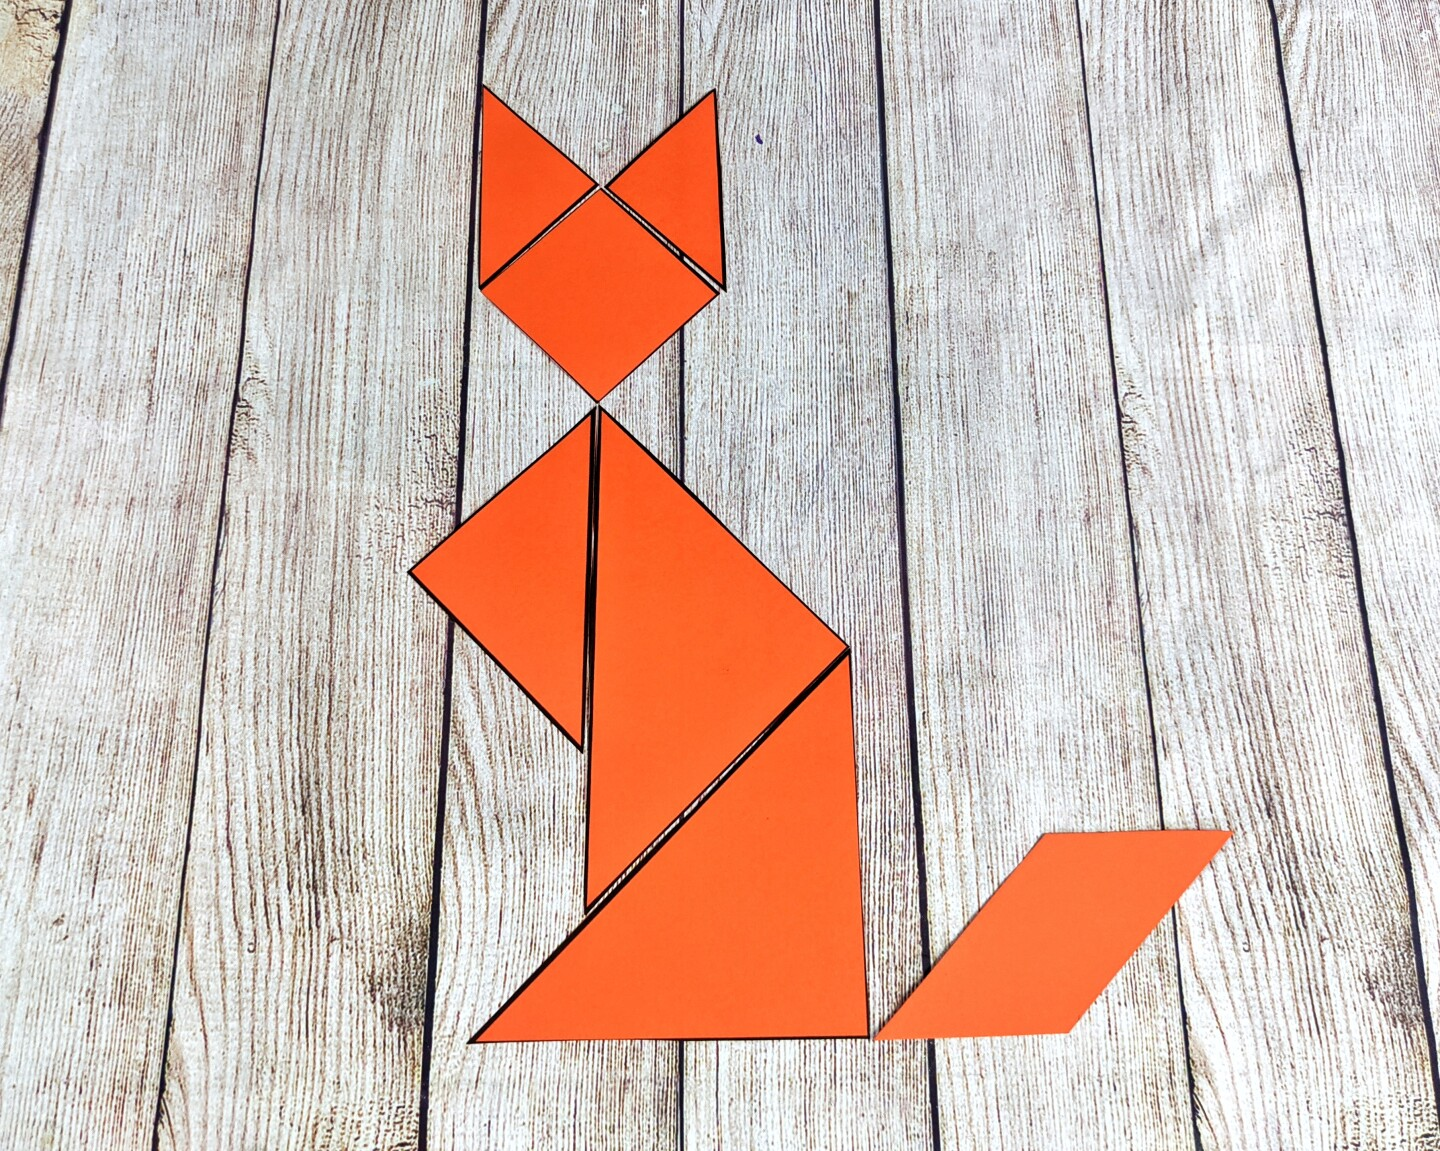 A tangram is arranged in the shape of a cat.